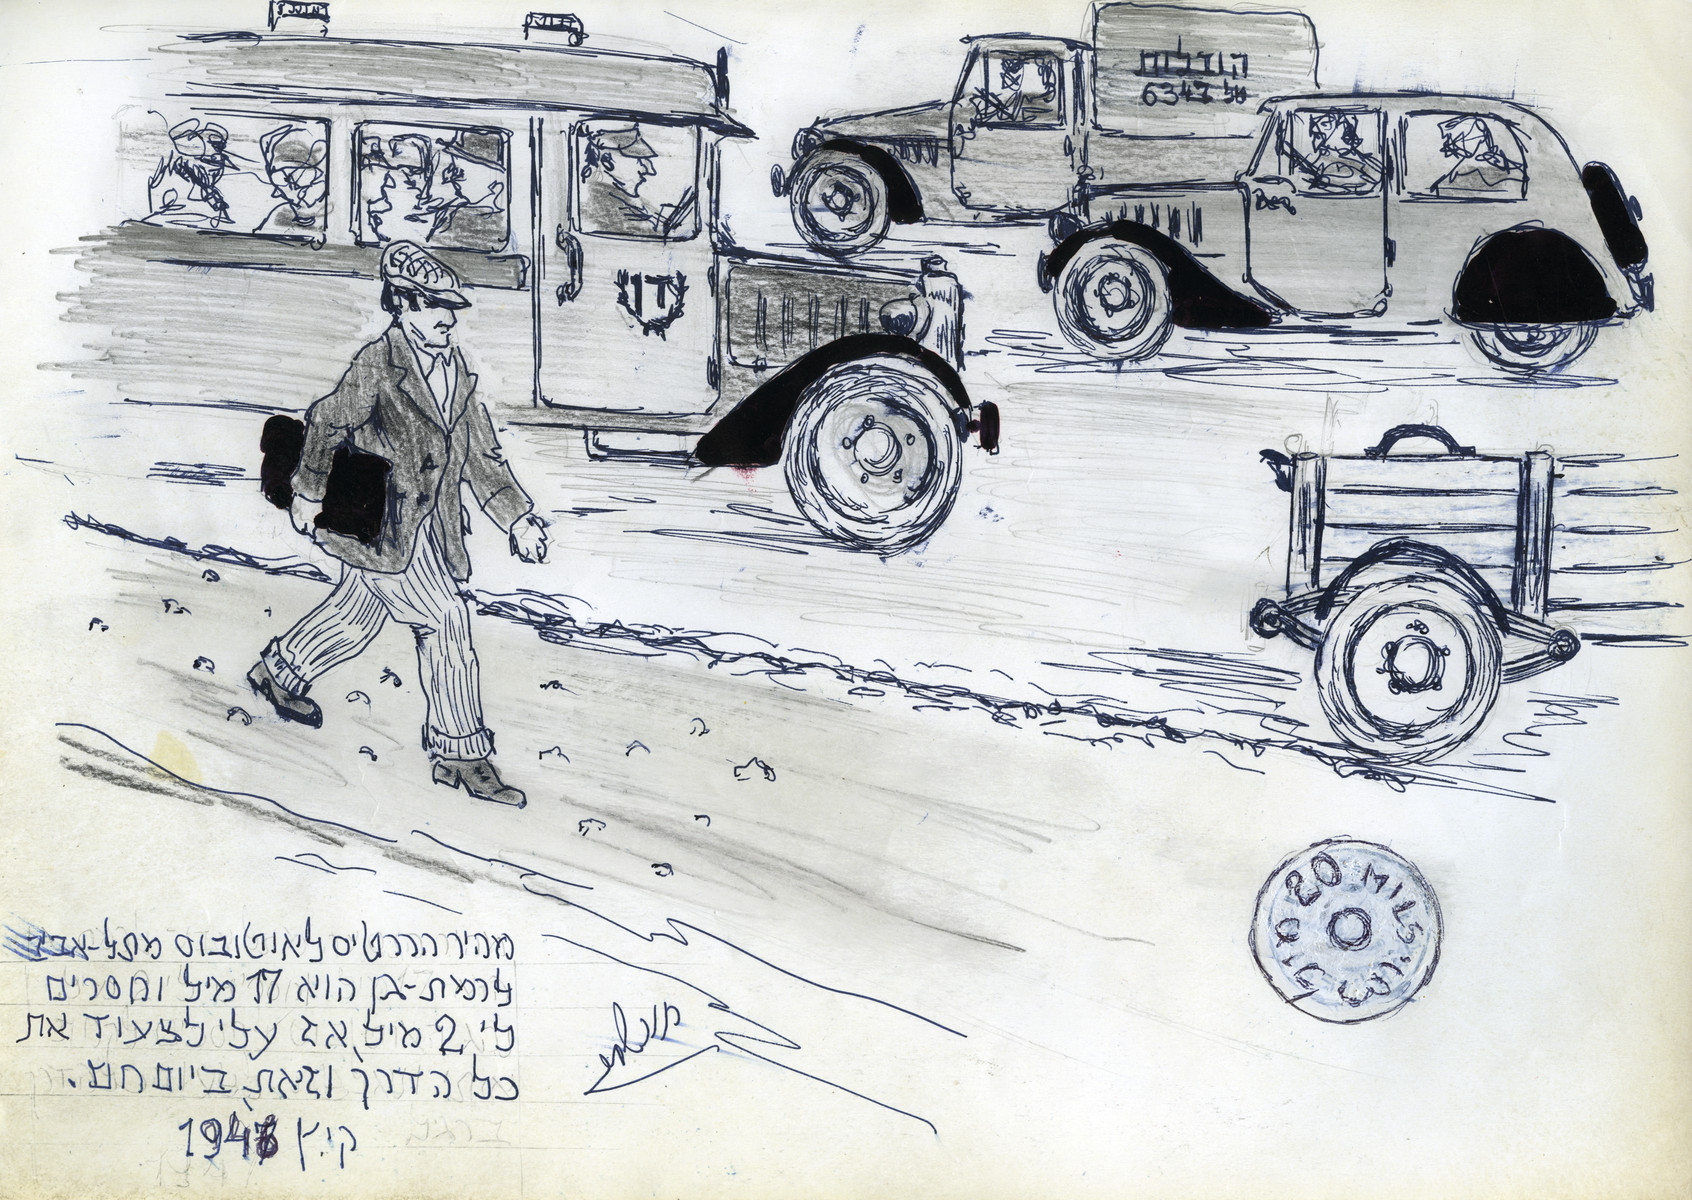 Page of a pictoral memoir drawn by the donor documenting his experiences after the Holocaust.  The drawing shows the artist walking by foot after not having enough money to ride by bus.  (Chronologically this drawing follows w/s 55108.)